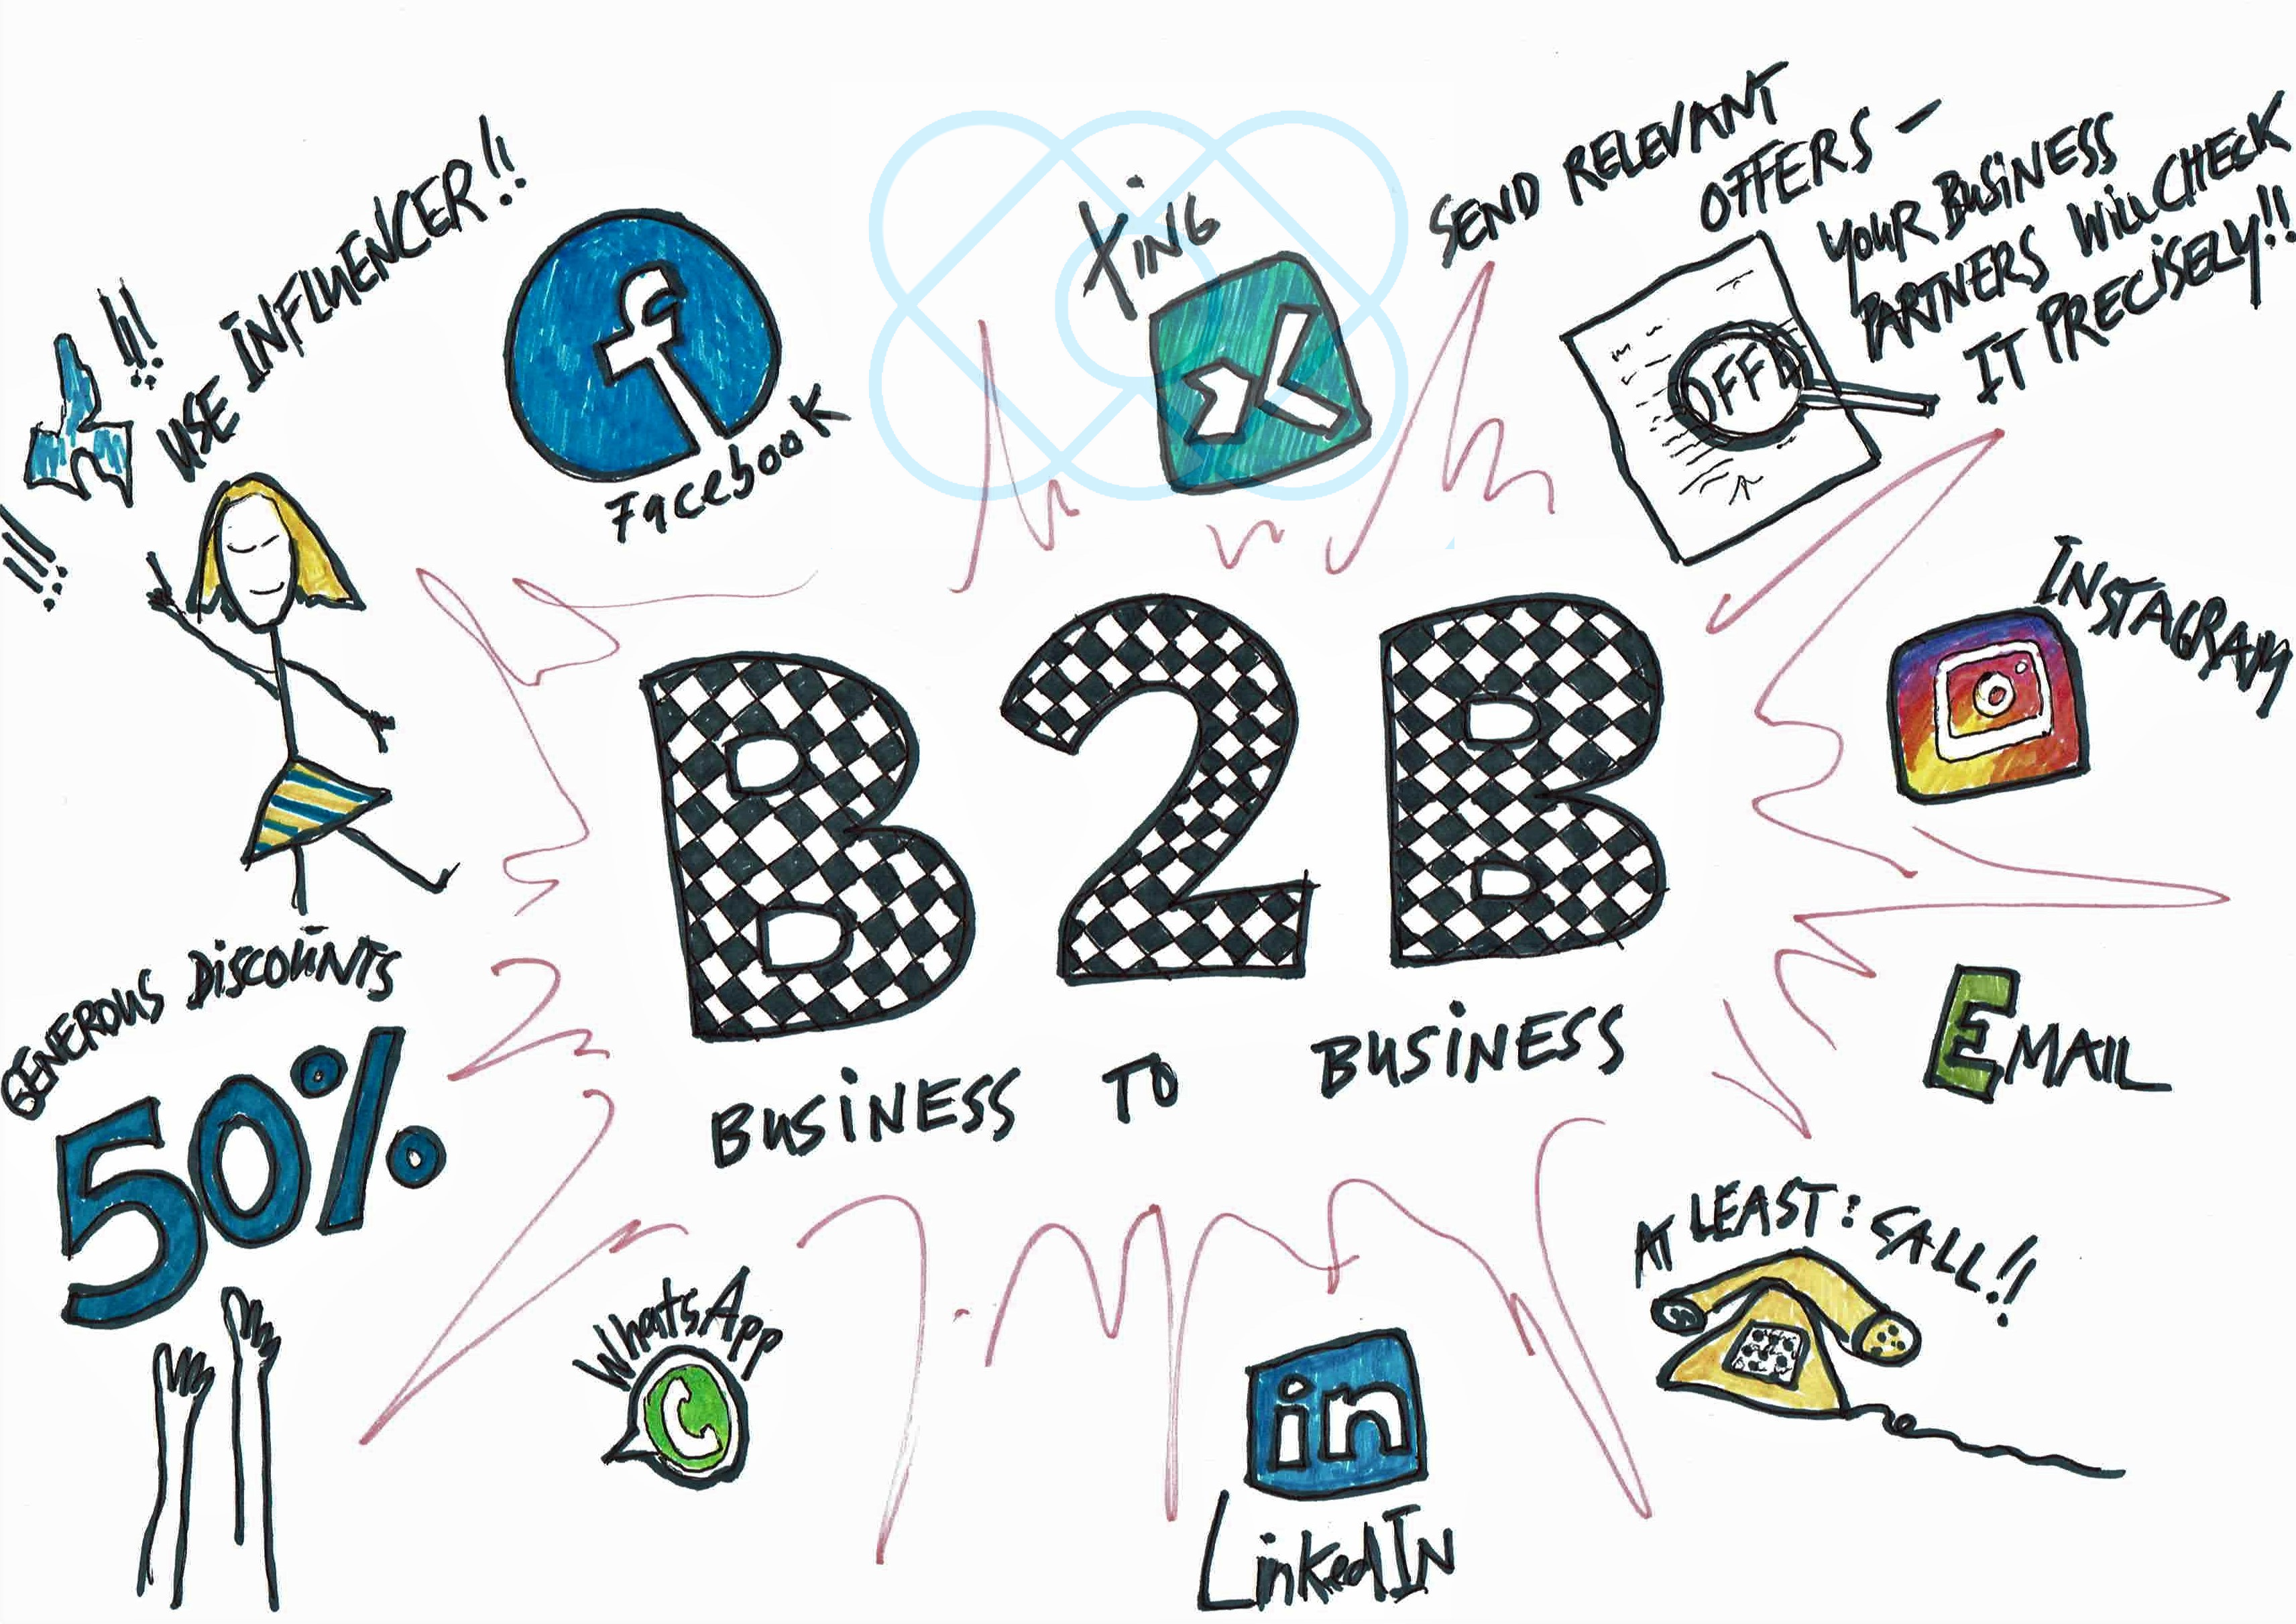 B2B: Marketing Tools